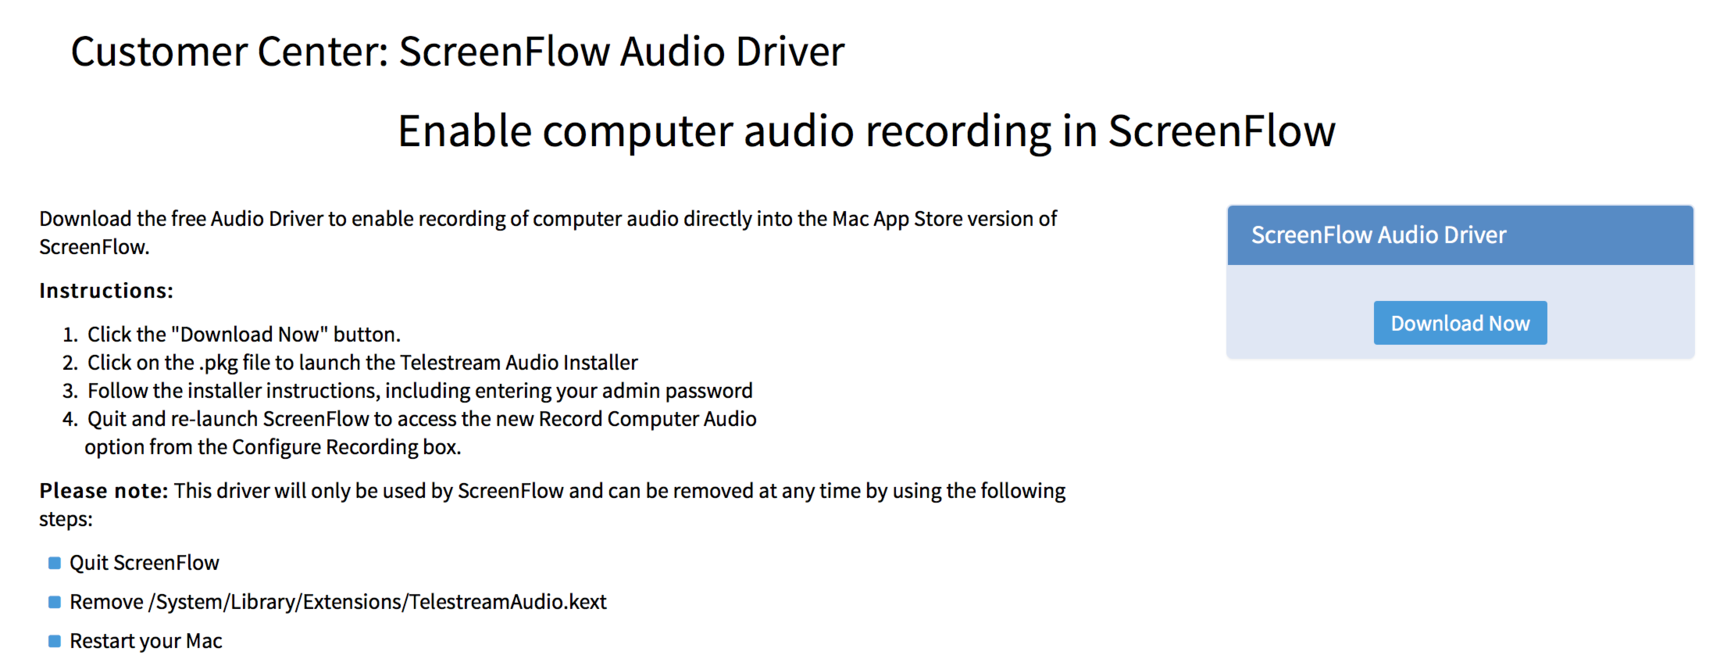 How To Delete Audio Driver On Mac How to delete an audio